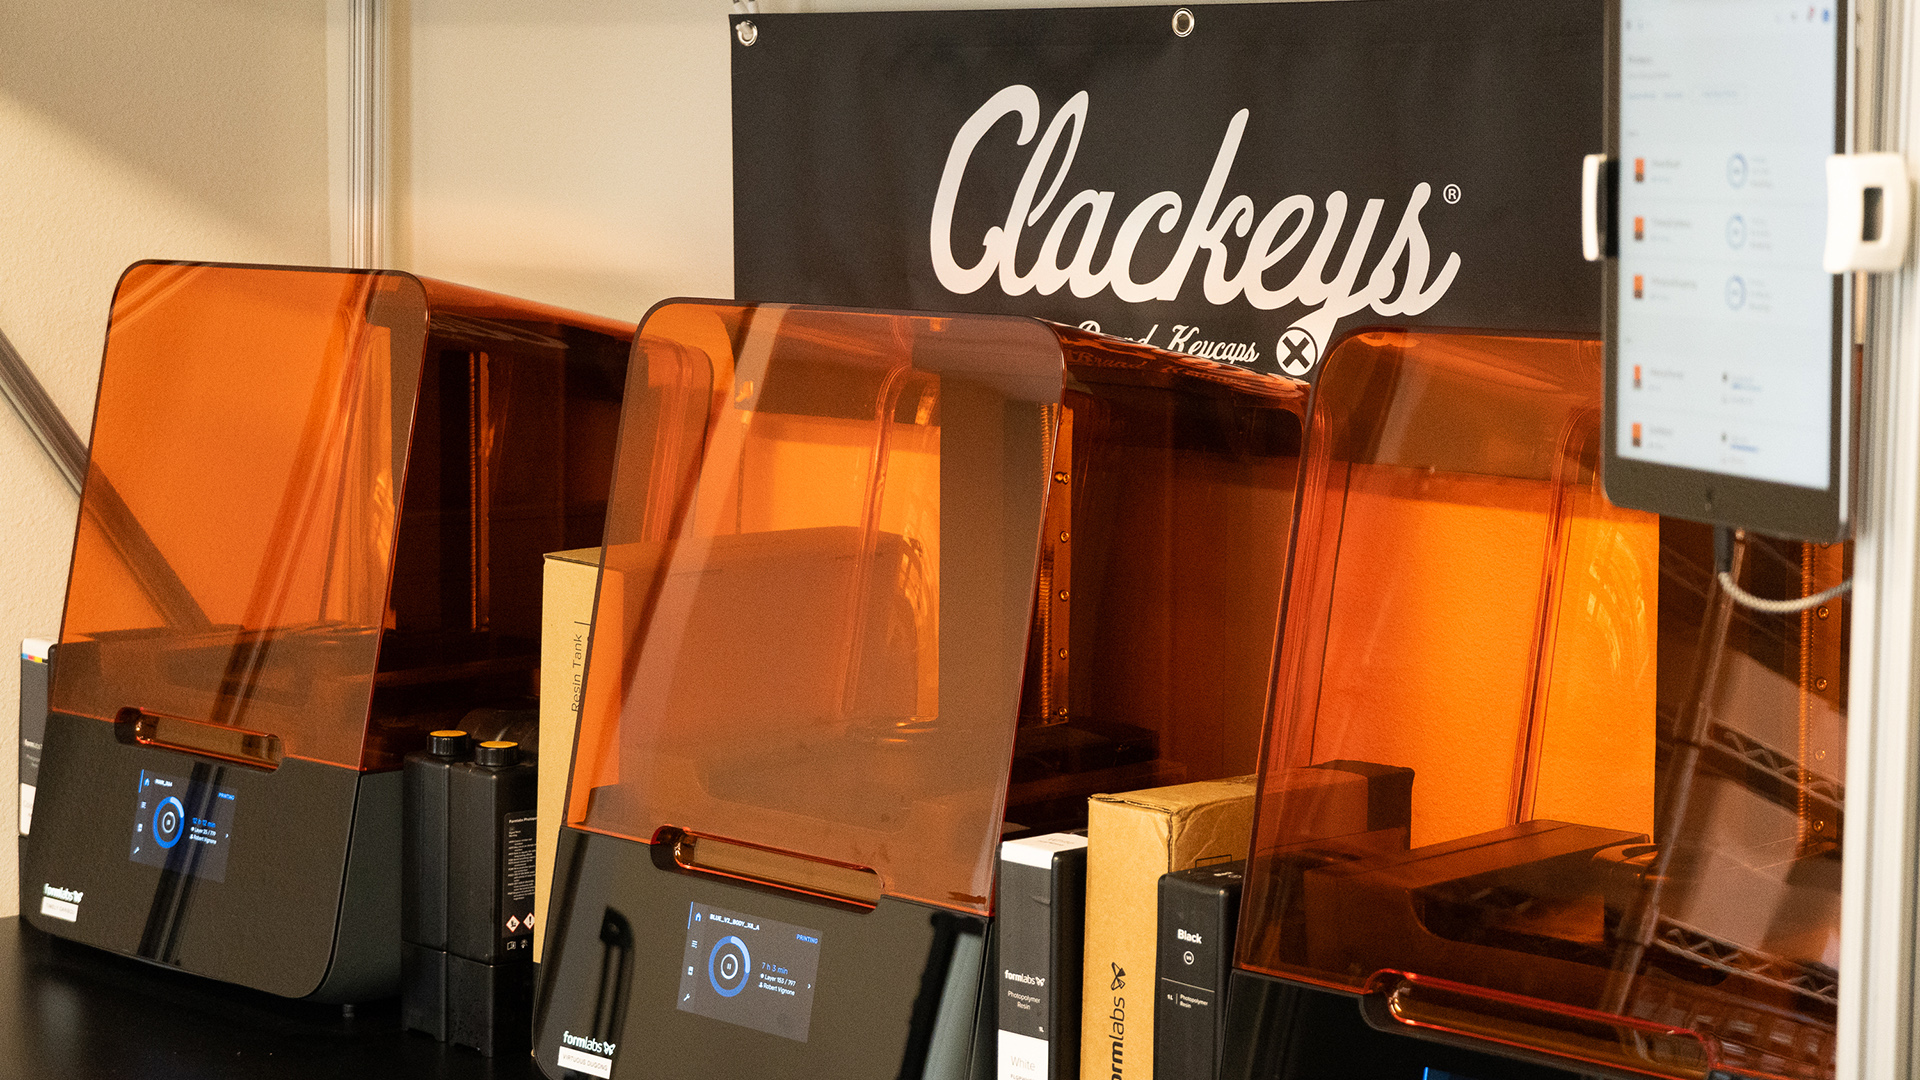 Image from the Clackeys Studio in California